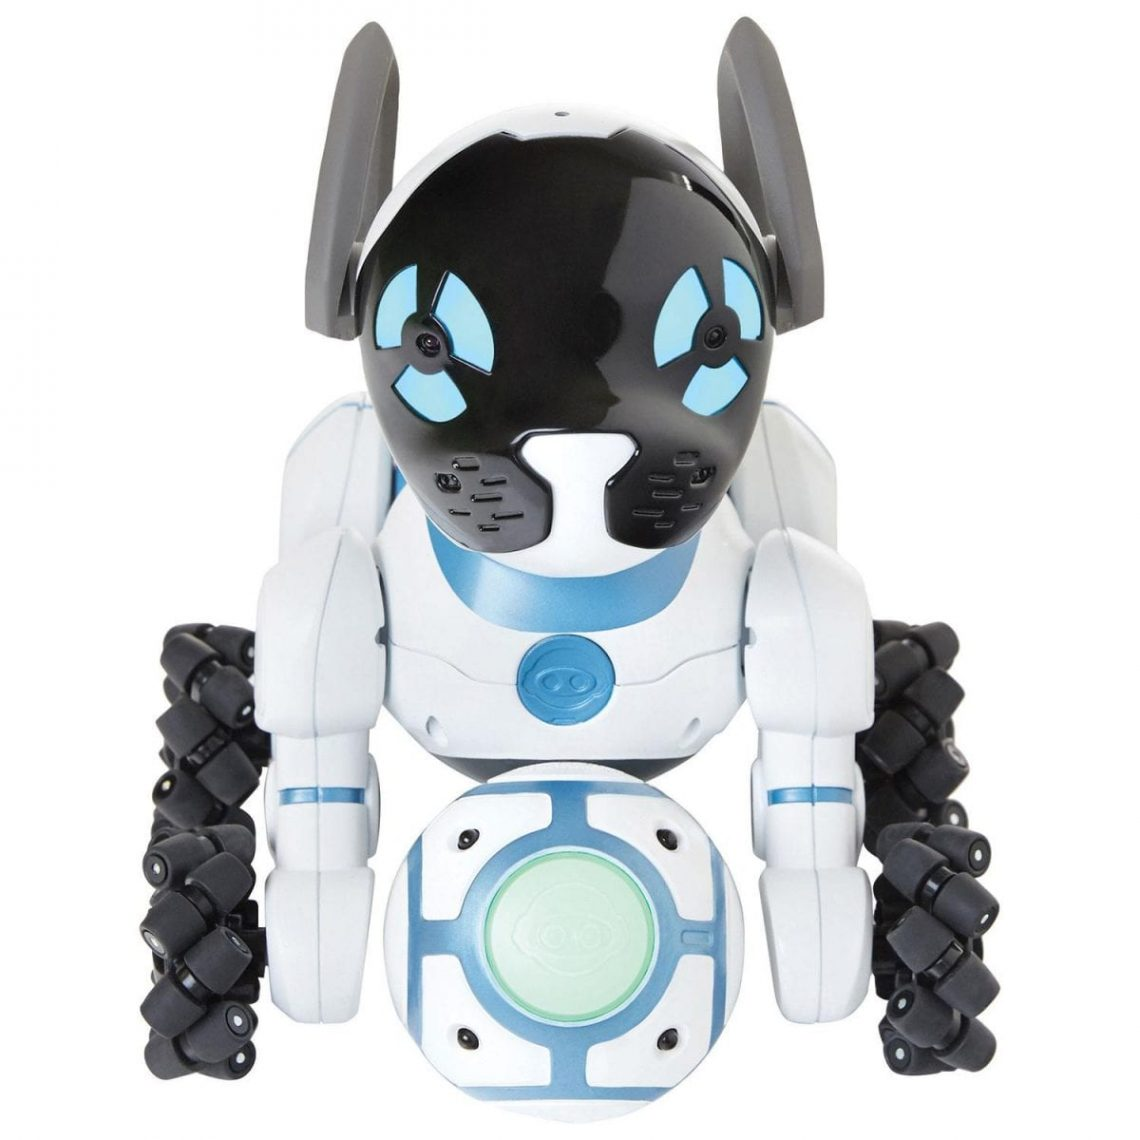 CHiP: WowWee Robot Toy Dog review